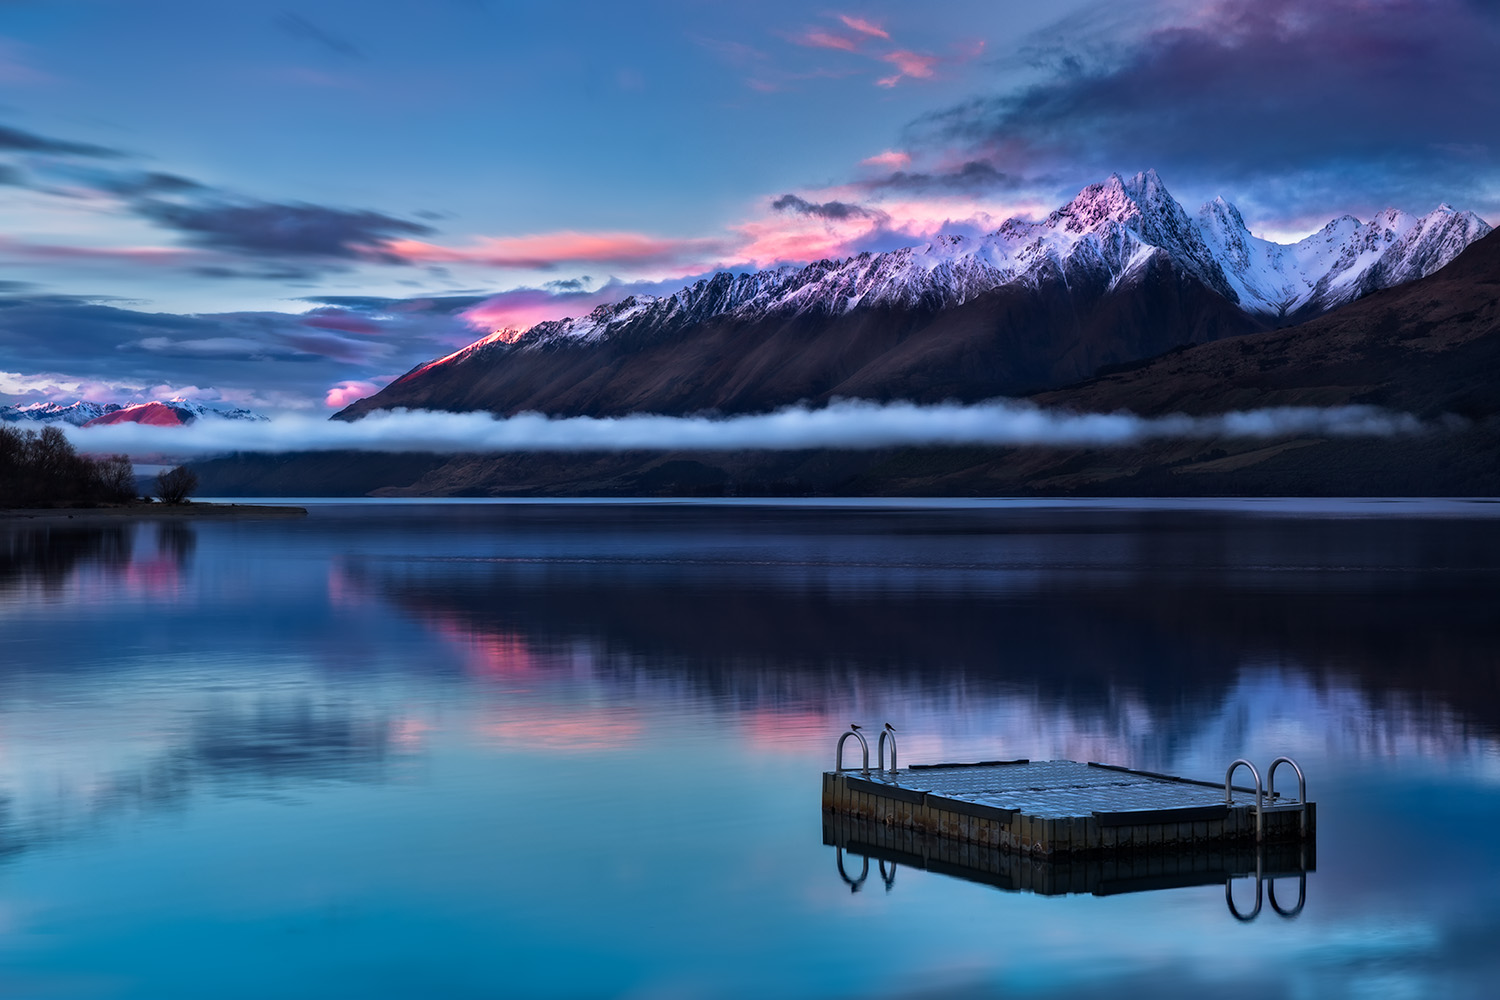 Landscape Photography Workshop Tour - Glenorchy, New Zealand by VivaKarolina